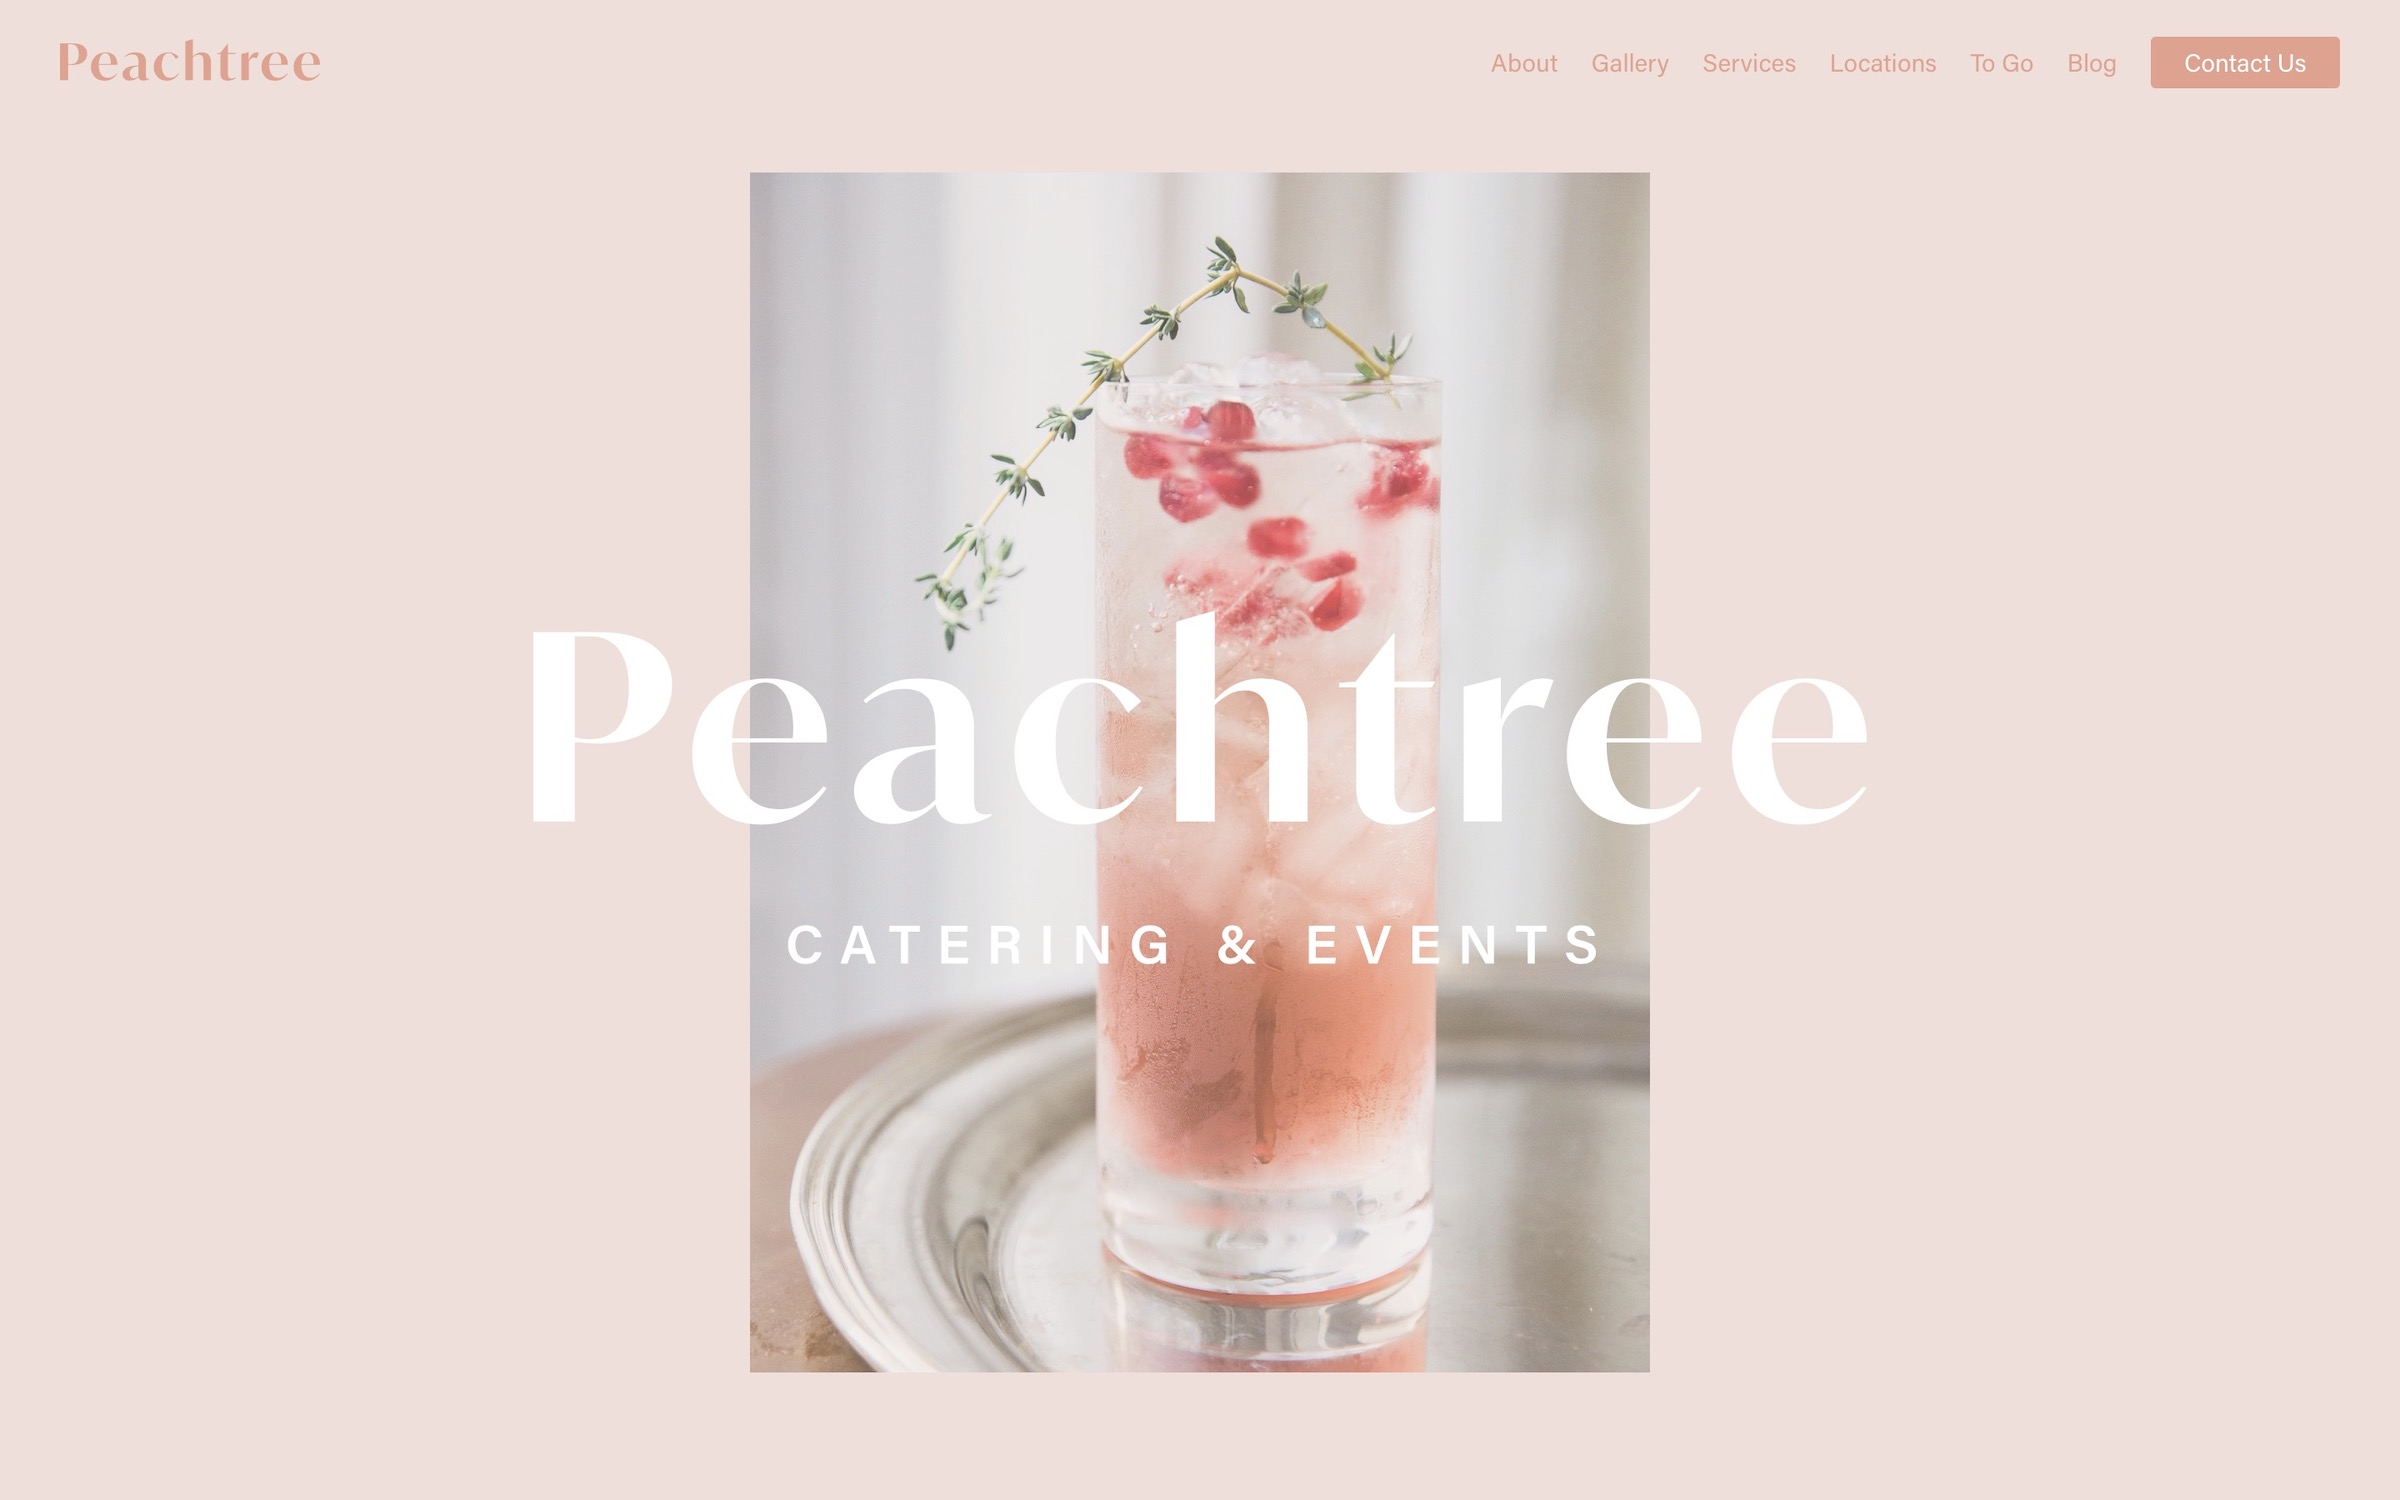 A screenshot of the Peachtree website homepage.